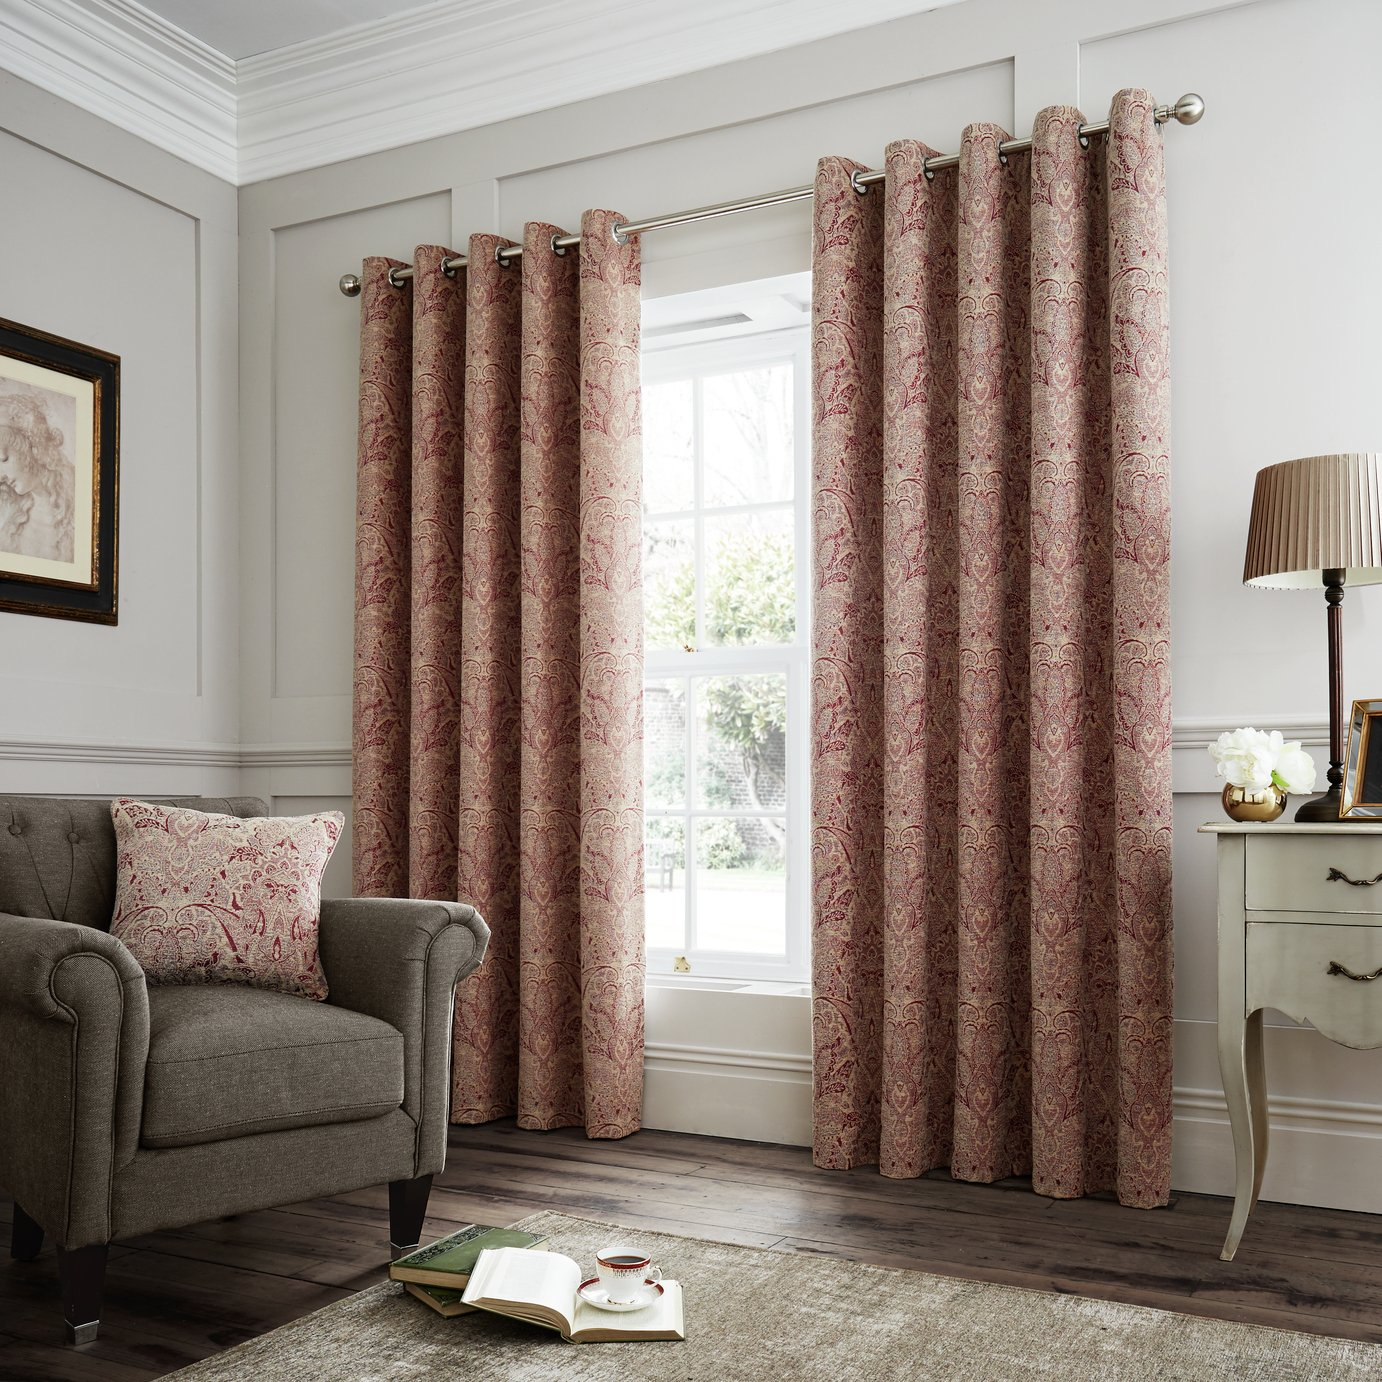 Curtina Whitcliffe Lined Eyelet Curtains - 330x229cm - Multi